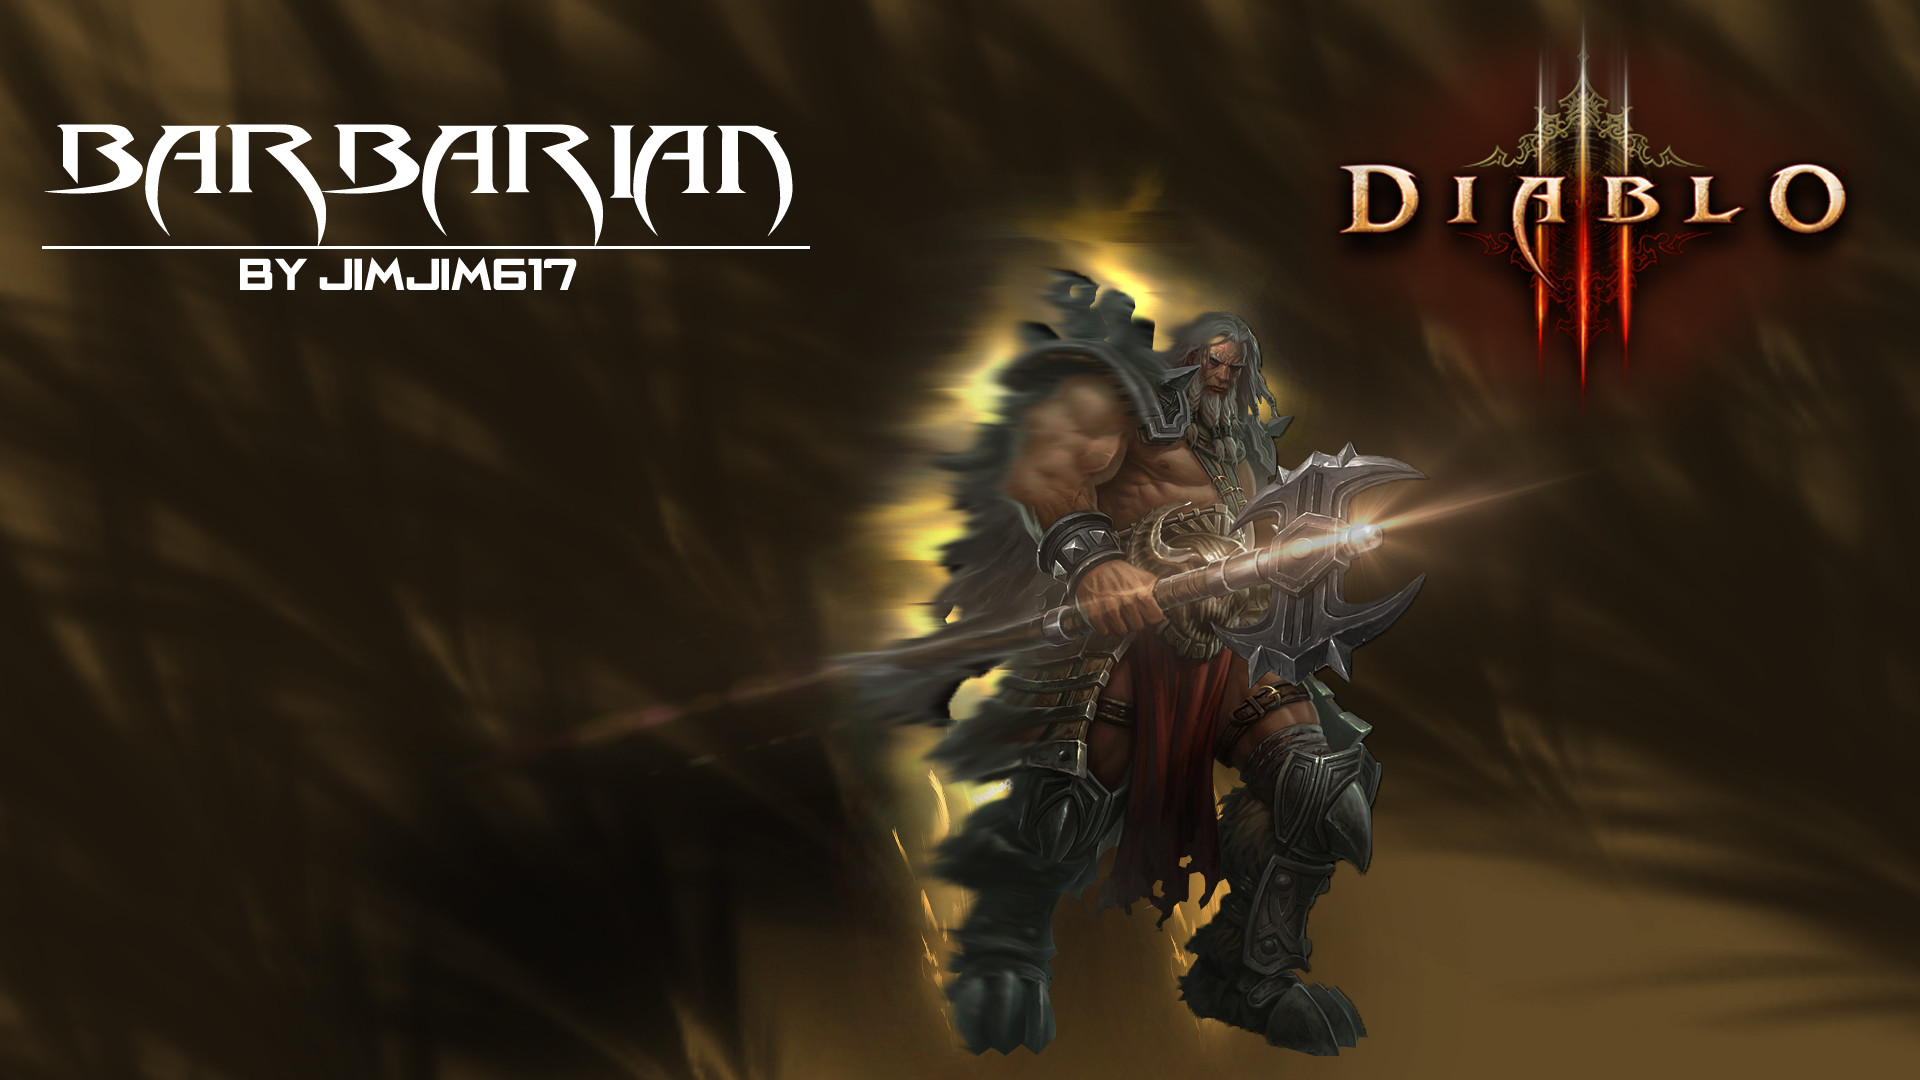 Res: 1920x1080, Diablo 3  Barbarian Wallpaper by jimjim617 Diablo 3   Barbarian Wallpaper by jimjim617